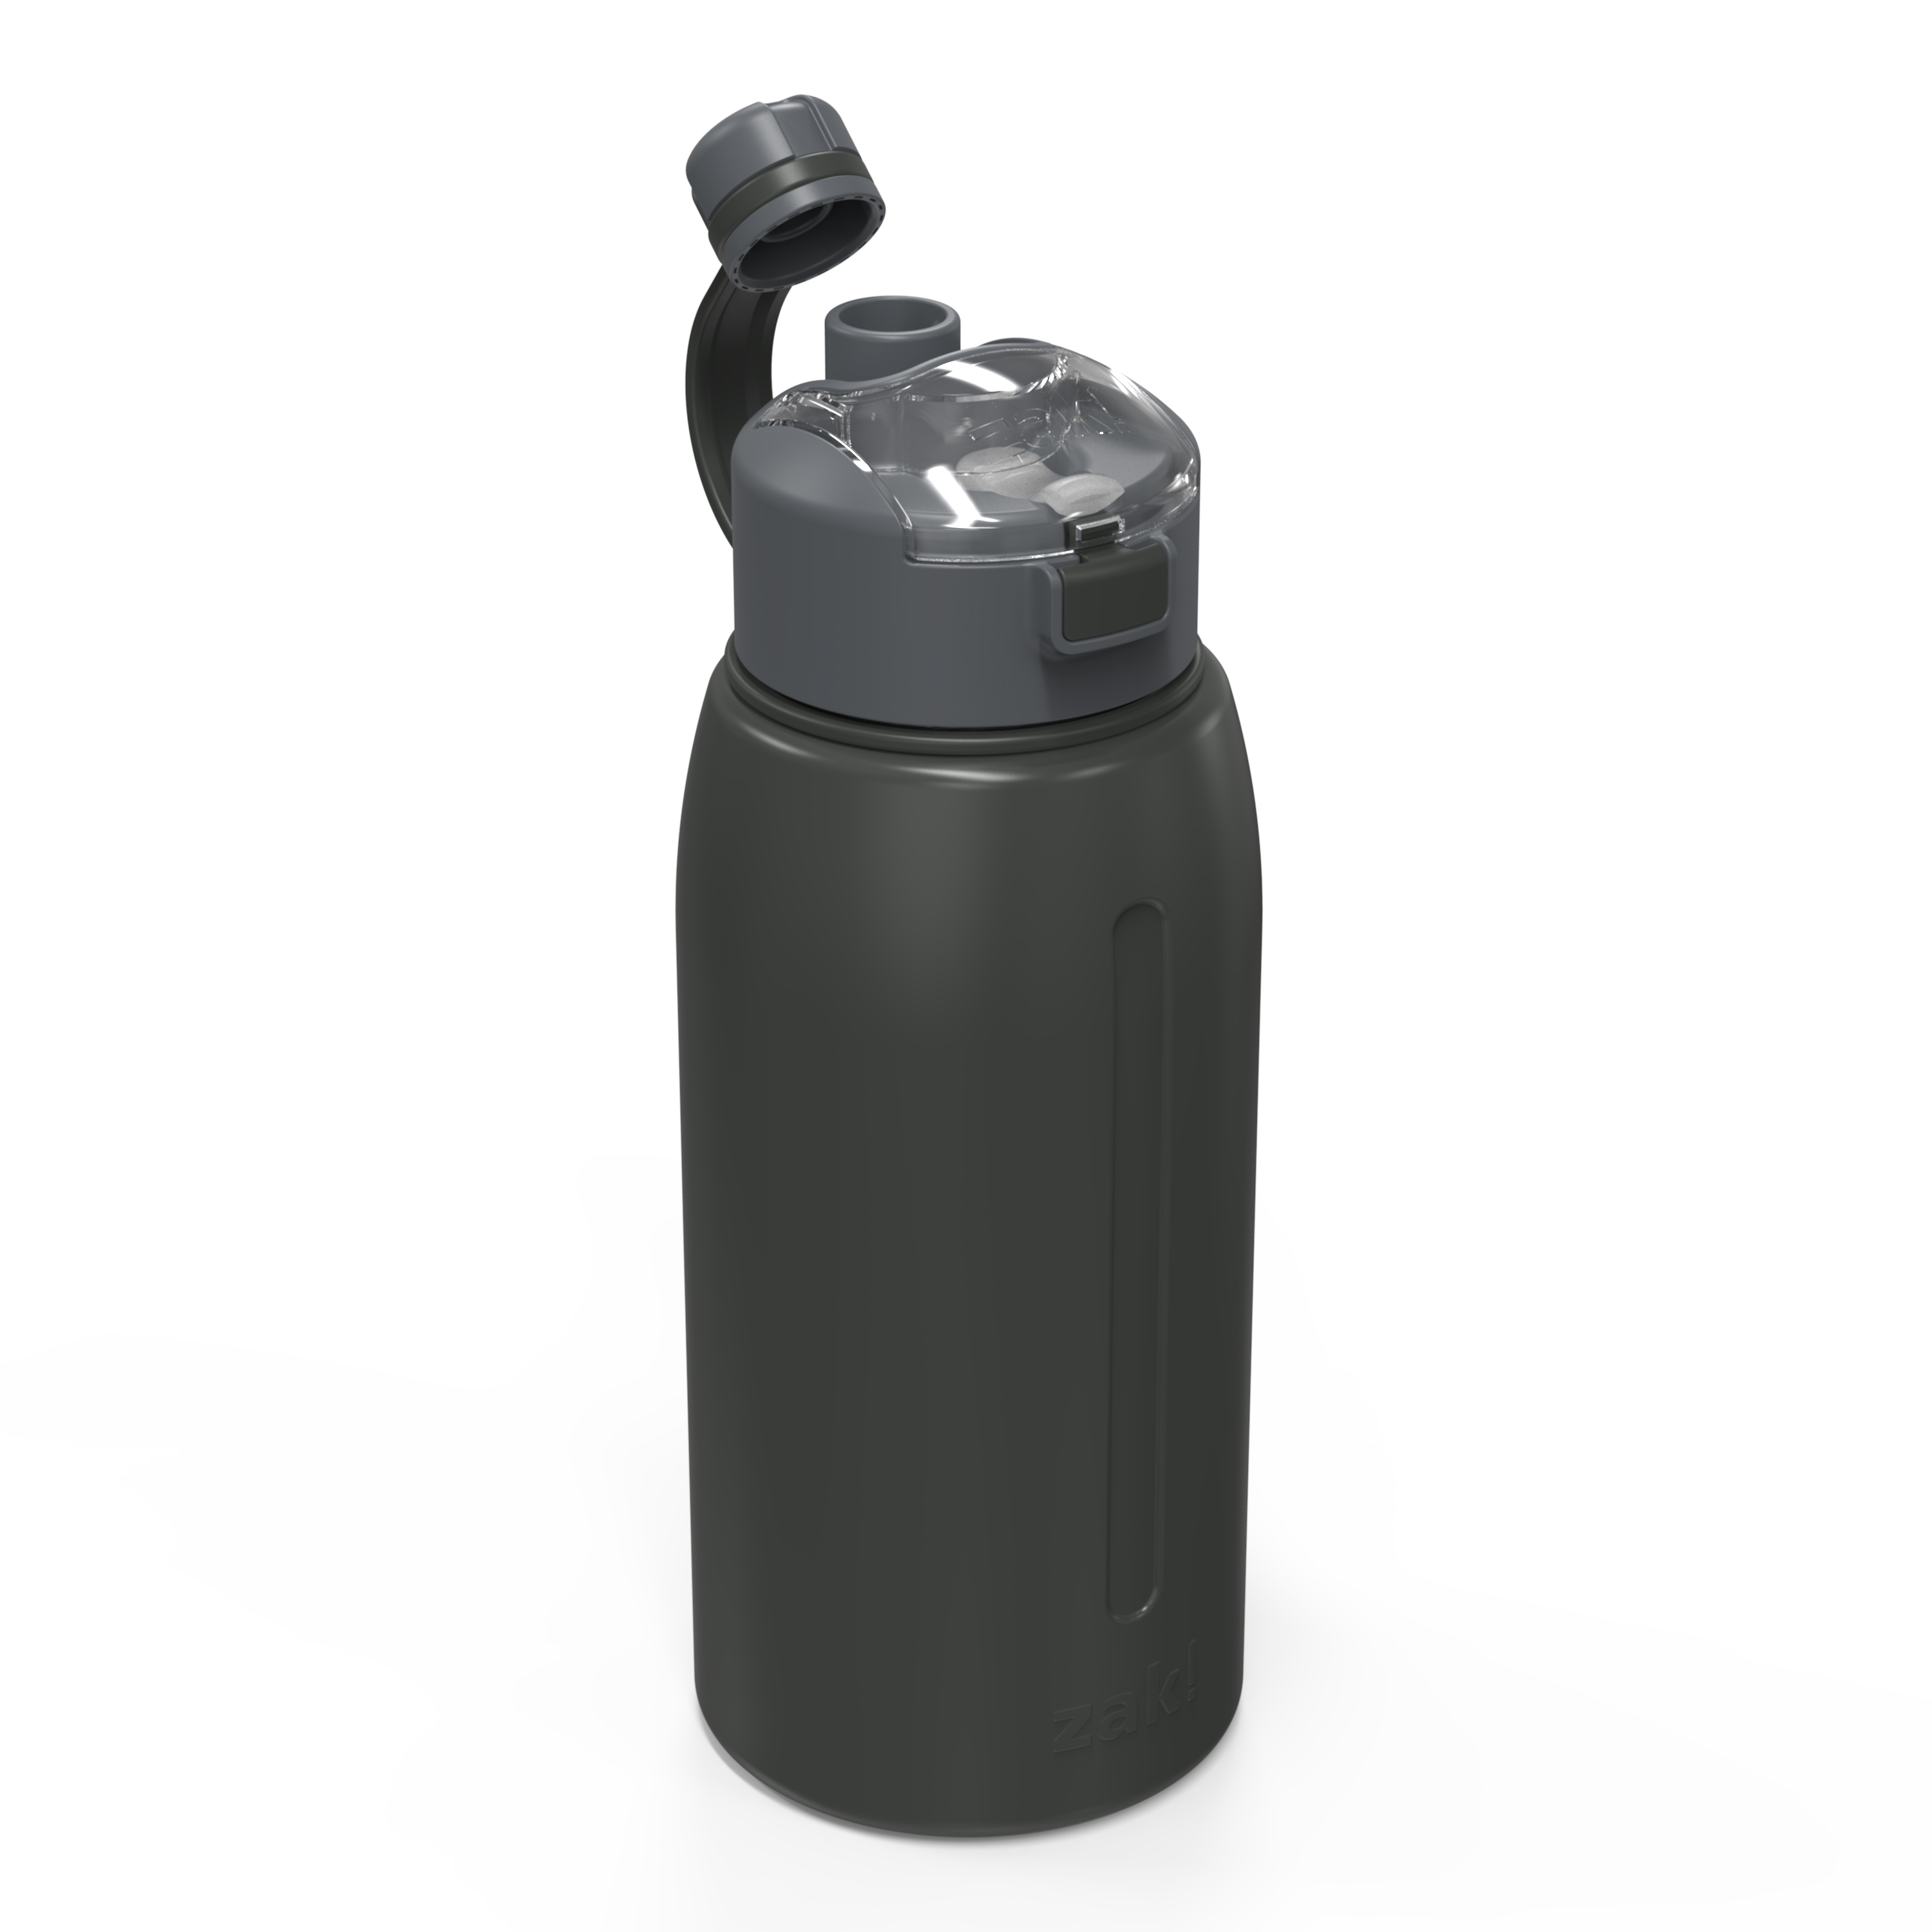 Genesis 32 ounce Vacuum Insulated Stainless Steel Tumbler, Charcoal slideshow image 5